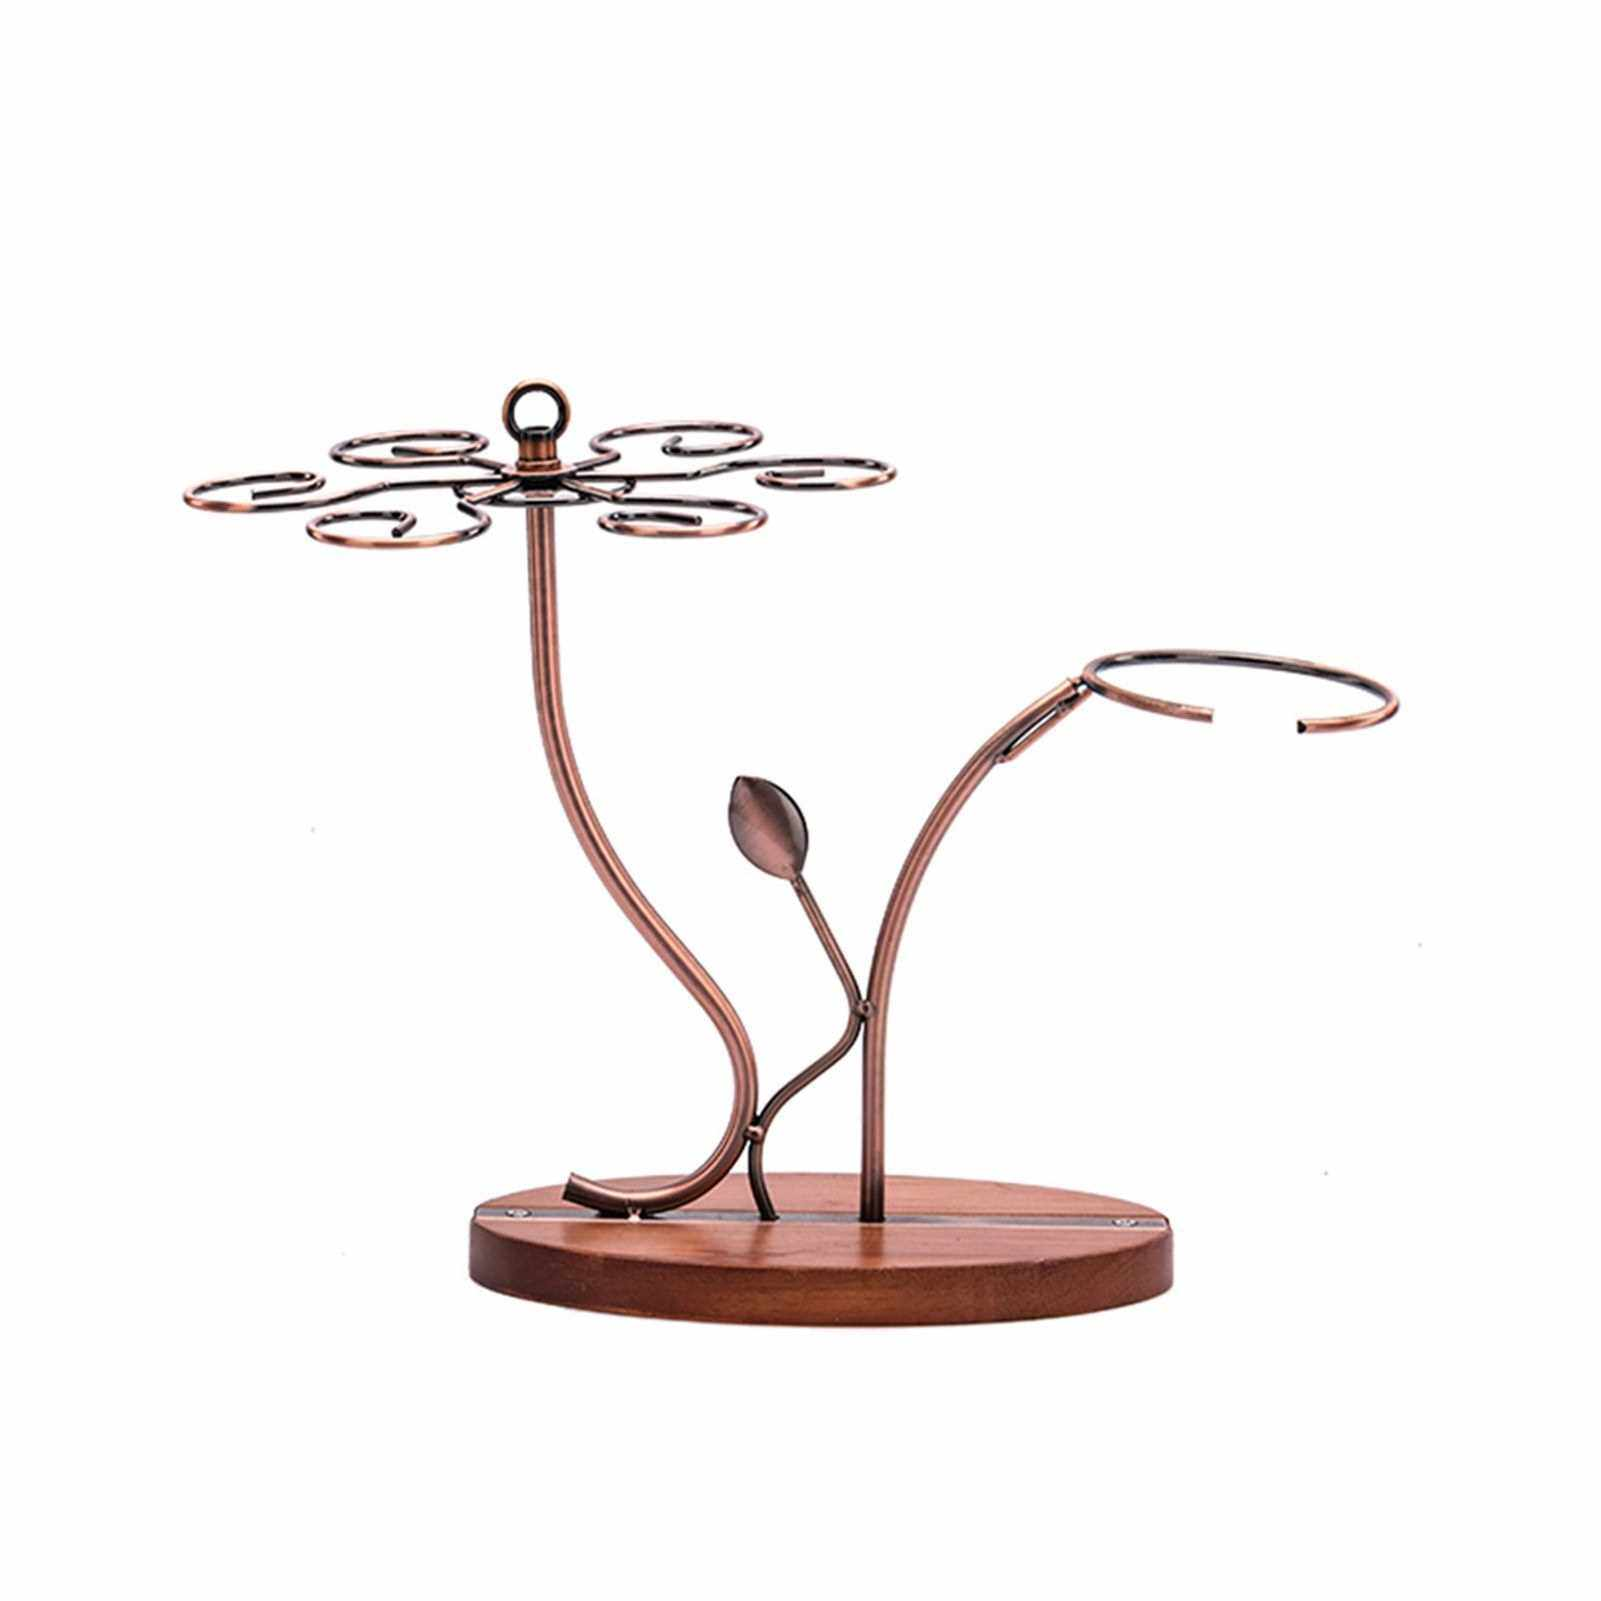 People's Choice 2-in-1 Red Wine Glass Rack & Wine Decanter Vintage Bronze 6 Wine Glasses Stemware Storage Display Drying Rack Stand Tabletop Free-standing Wine Glass Holder Solid Wooe Base (Standard)